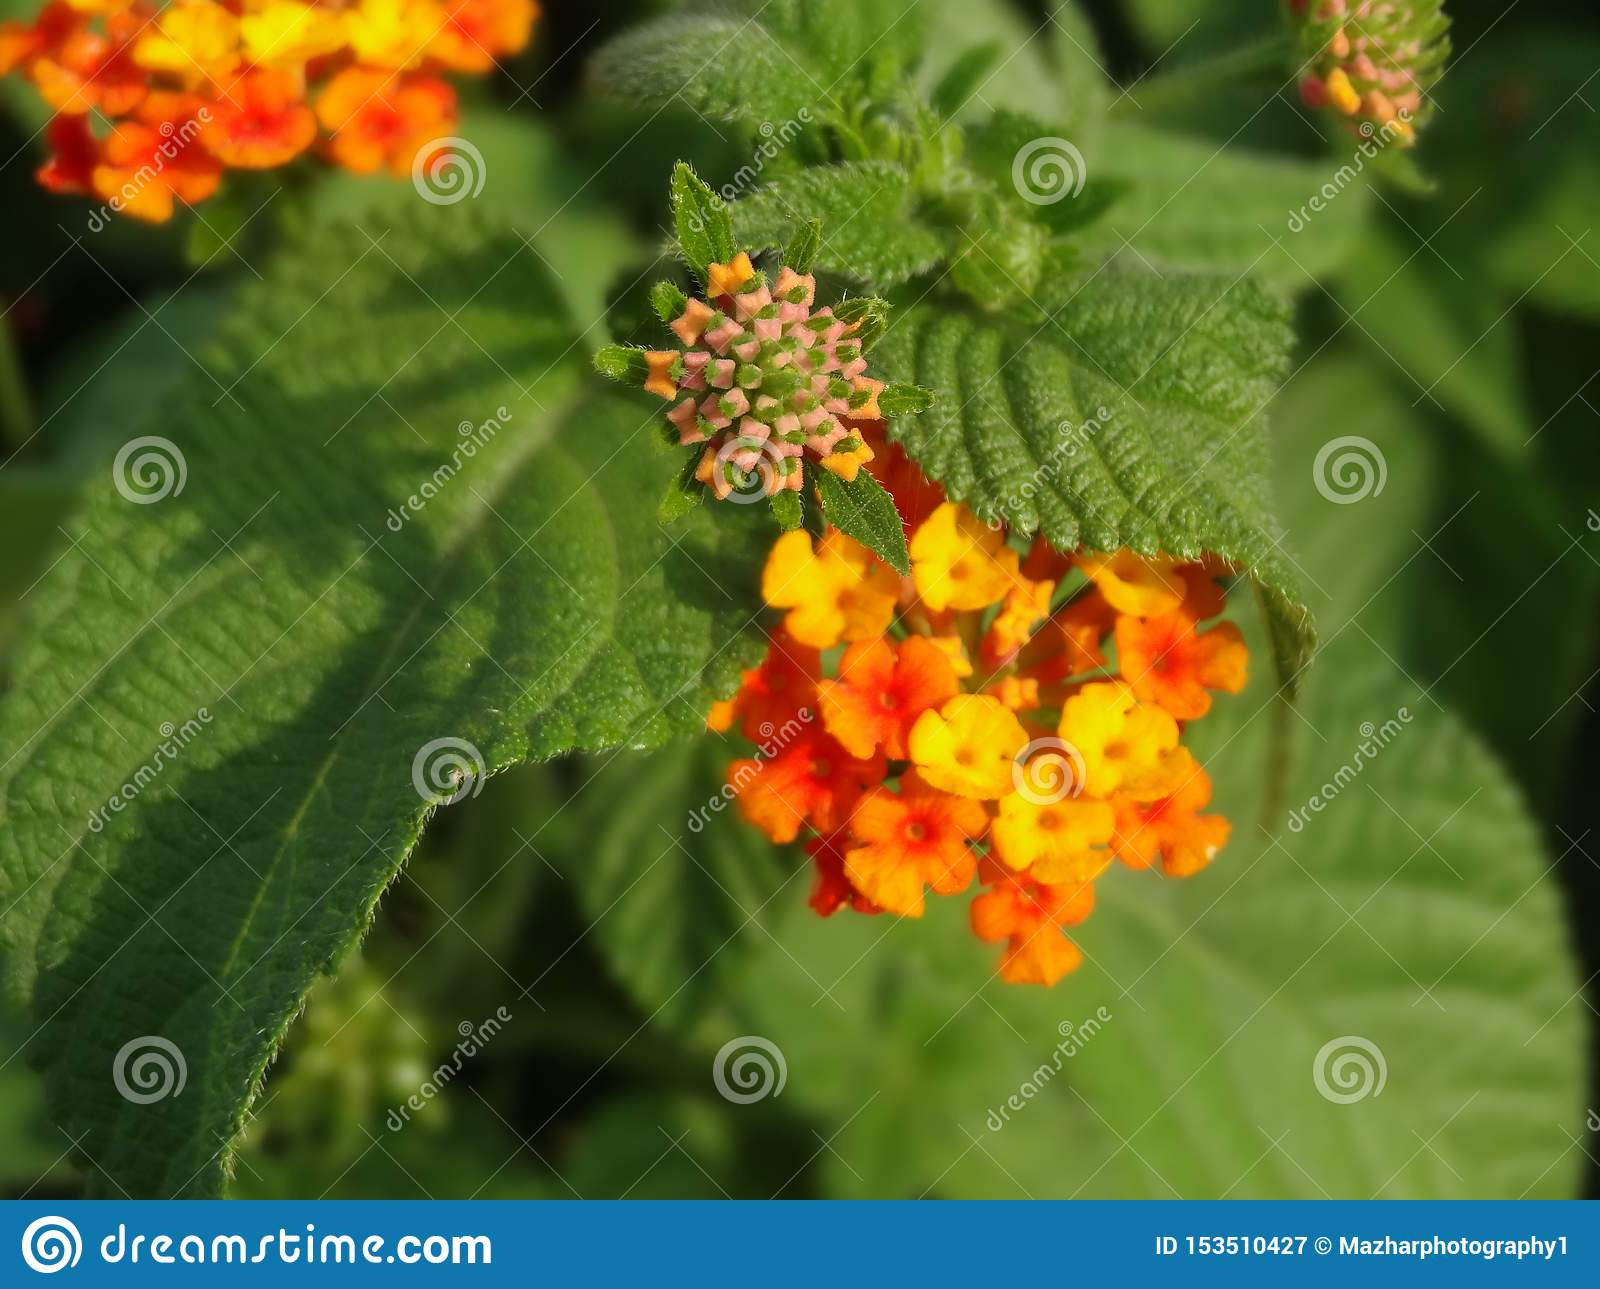 Lantana flowers with green leaves